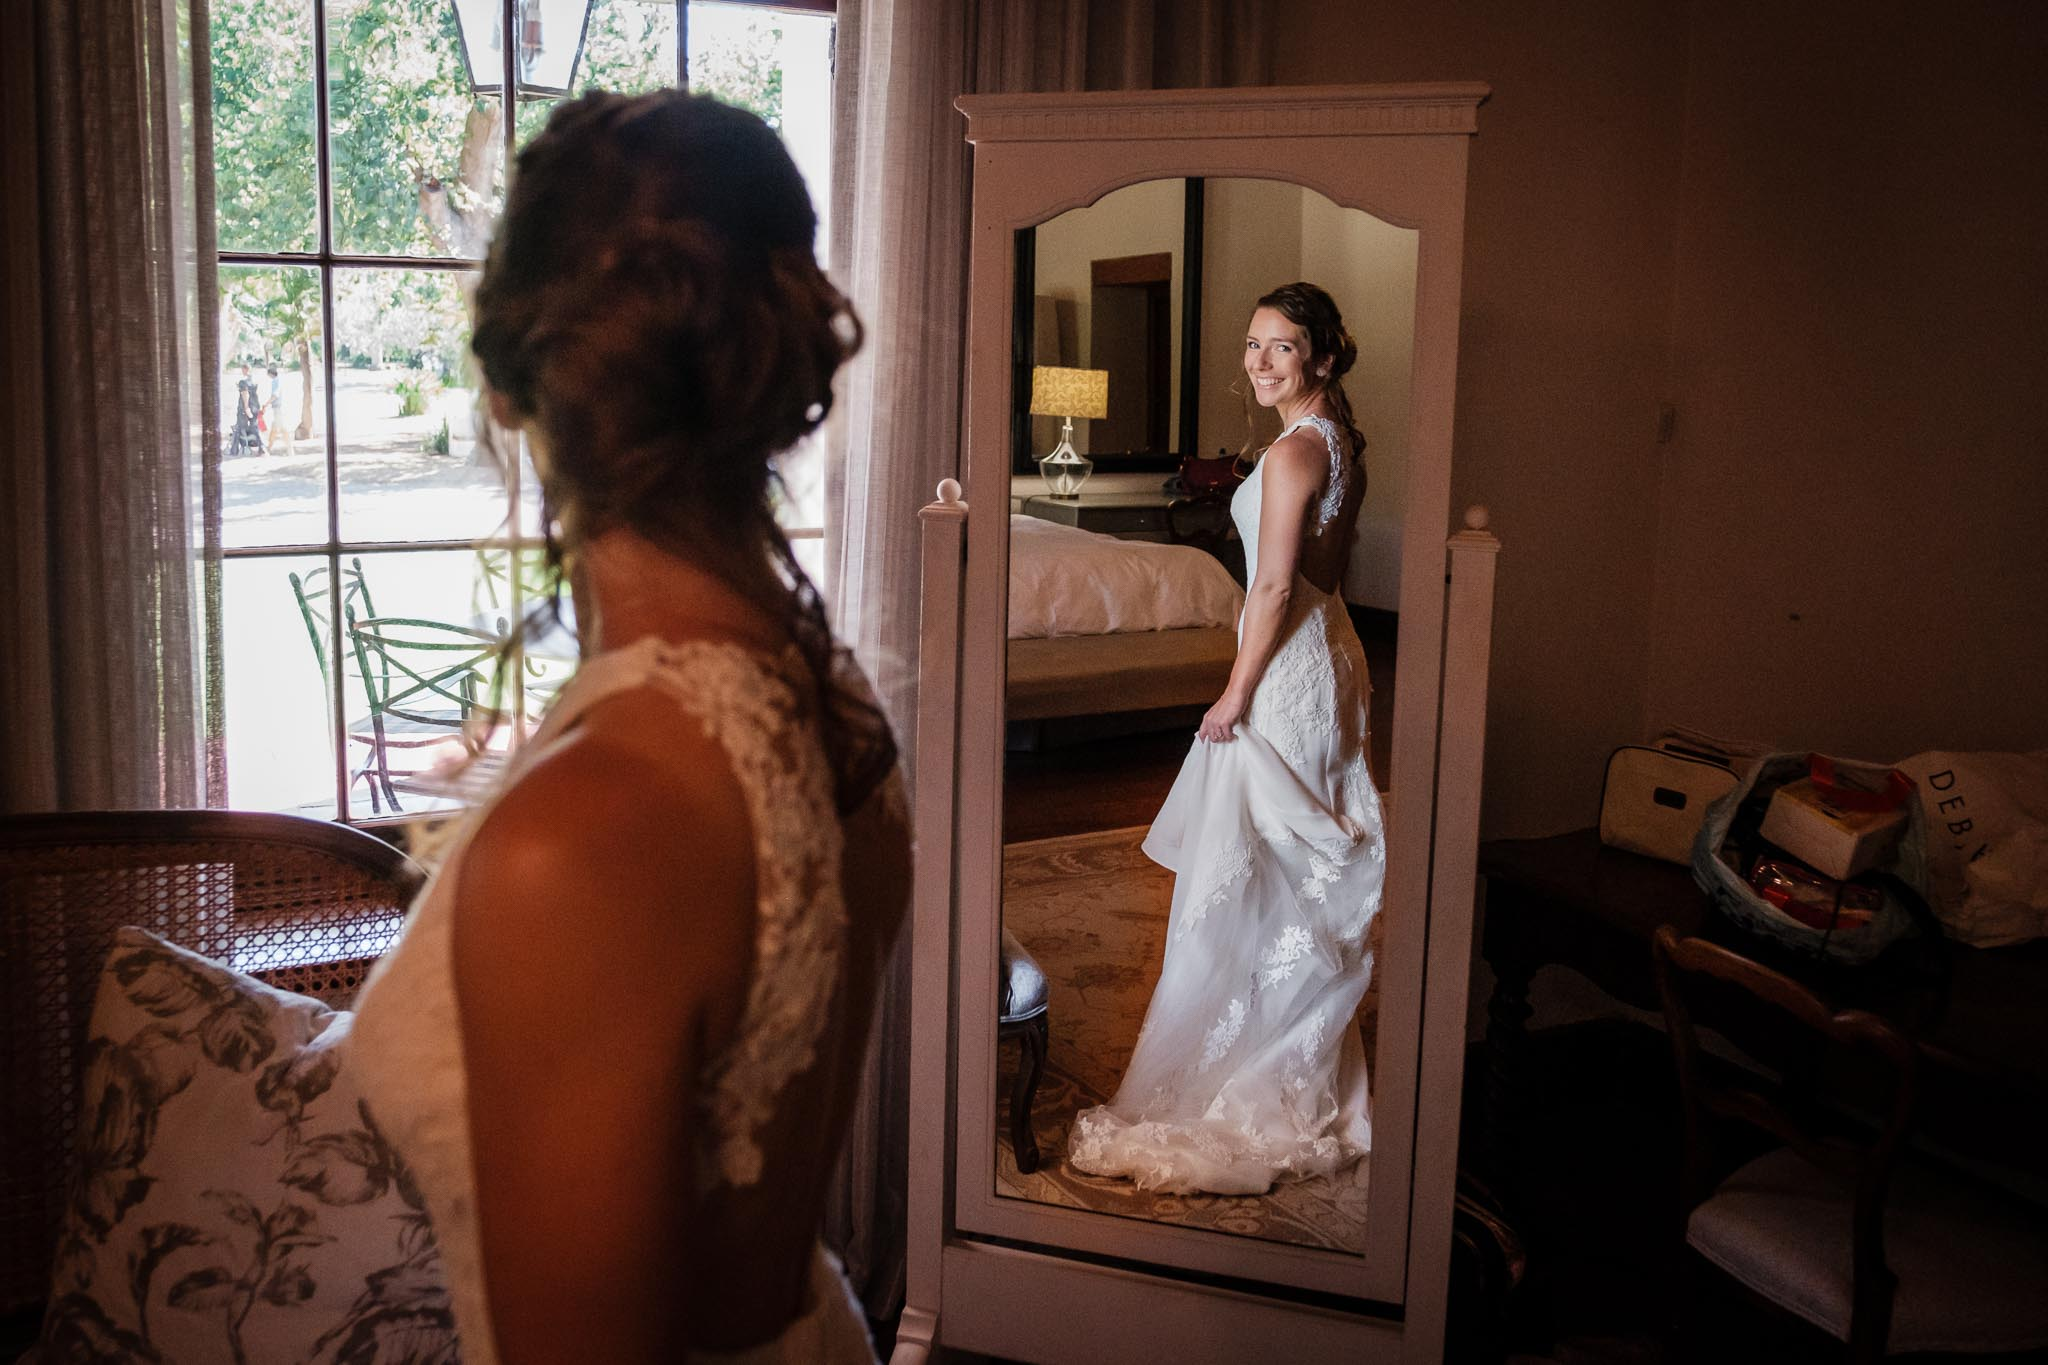 Bridal mirror portrait